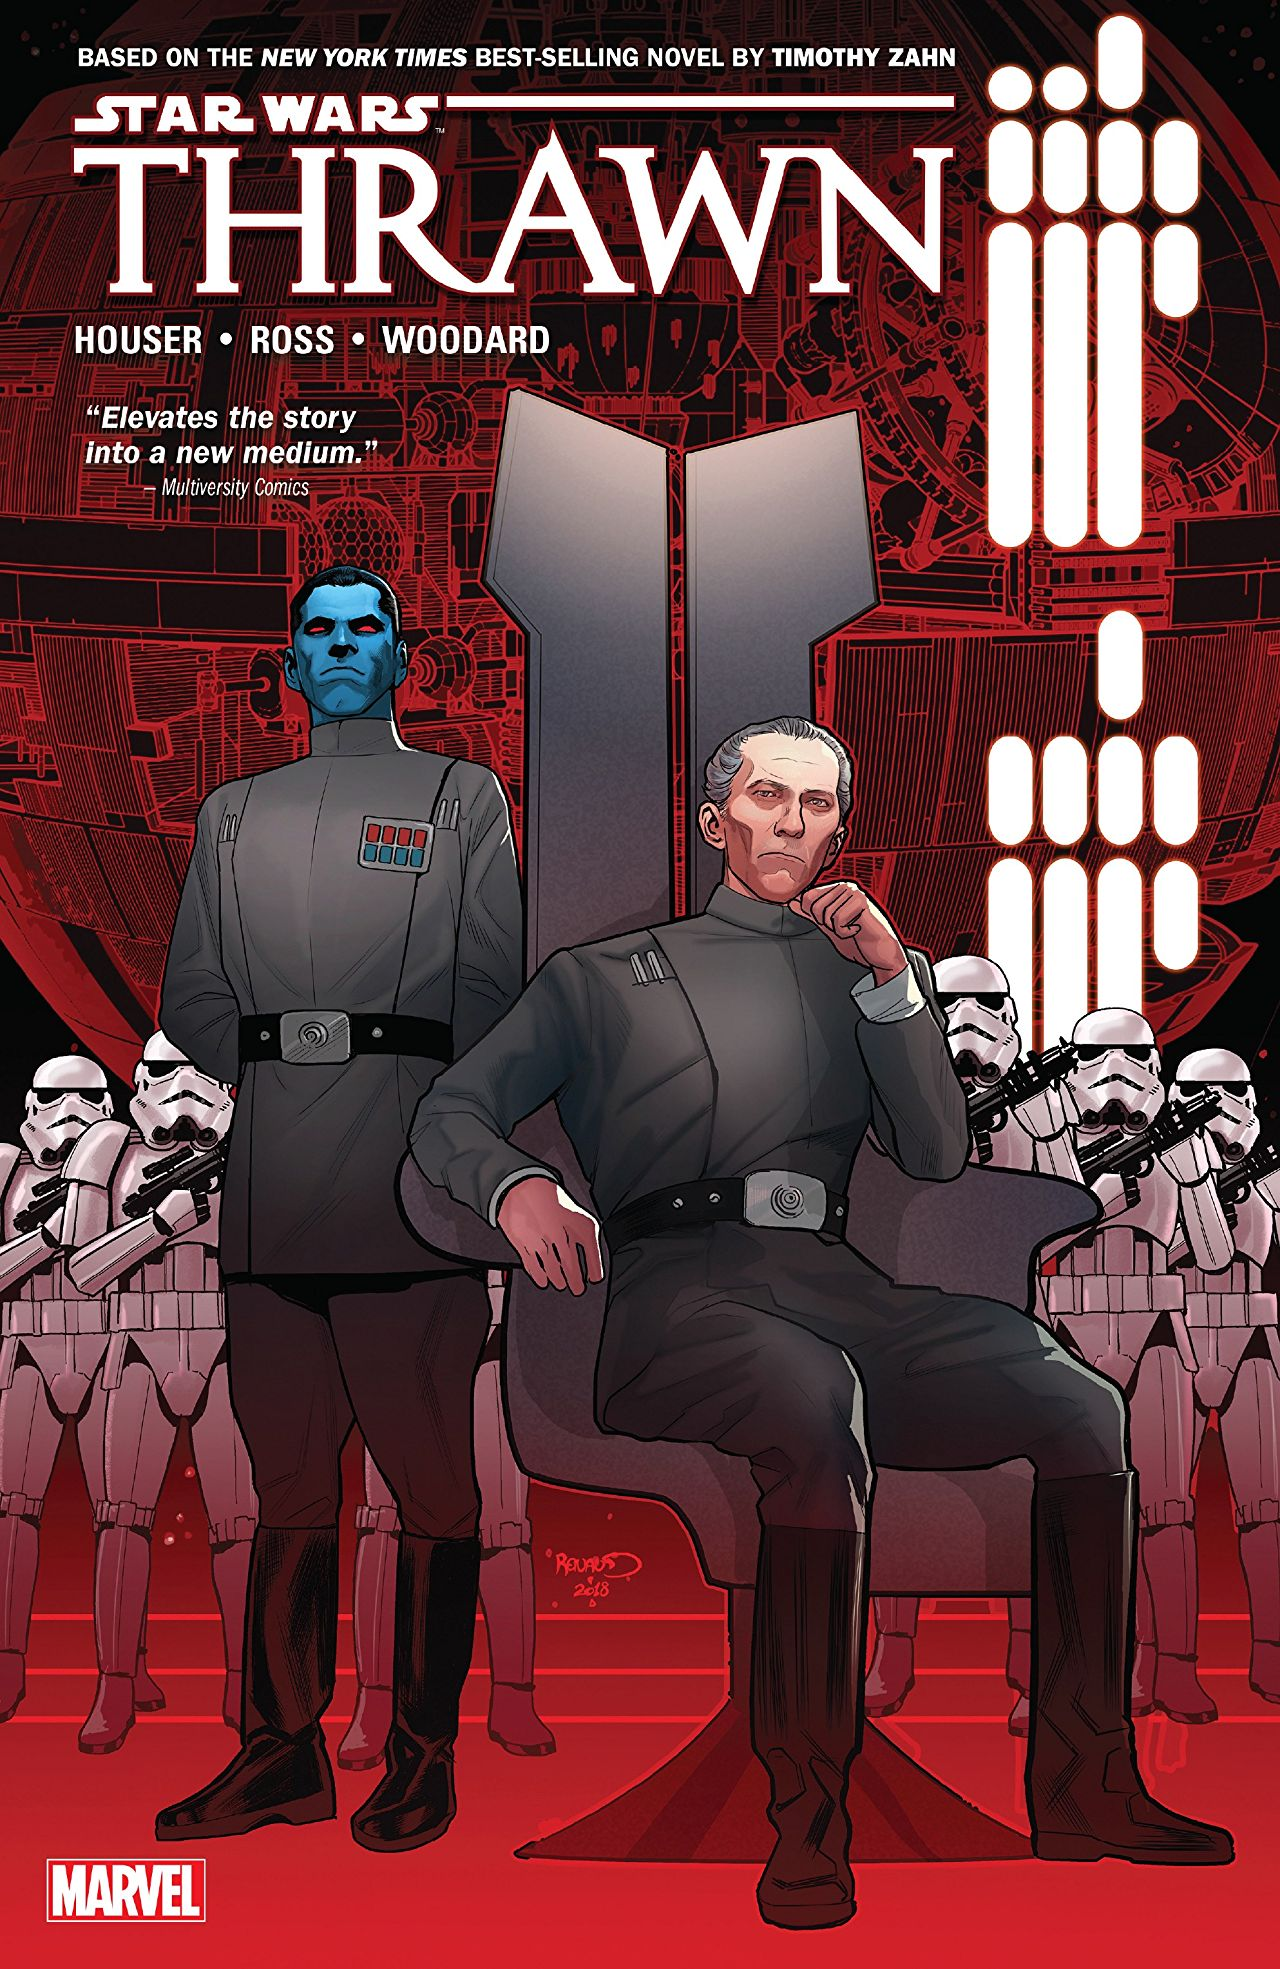 'Star Wars: Thrawn' graphic novel review